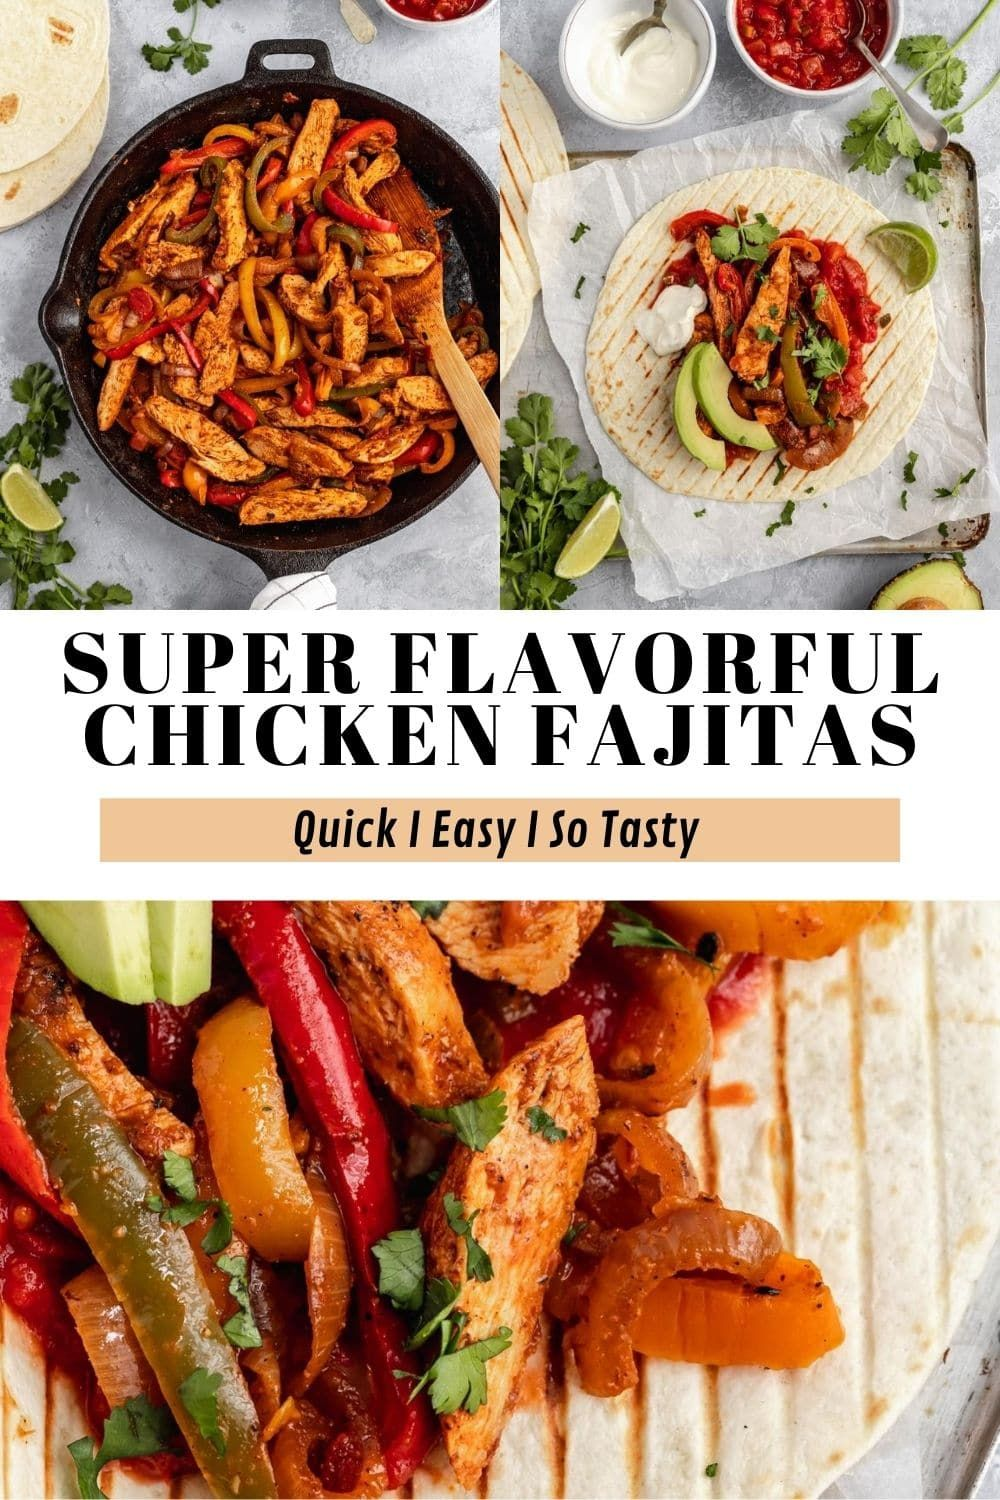 This Is Seriously The Best Chicken Fajitas Recipe It S Quick Easy And Soooo Flavorful These Chicken Fajitas Ar In 2020 Fajita Recipe Recipes Healthy Mexican Recipes